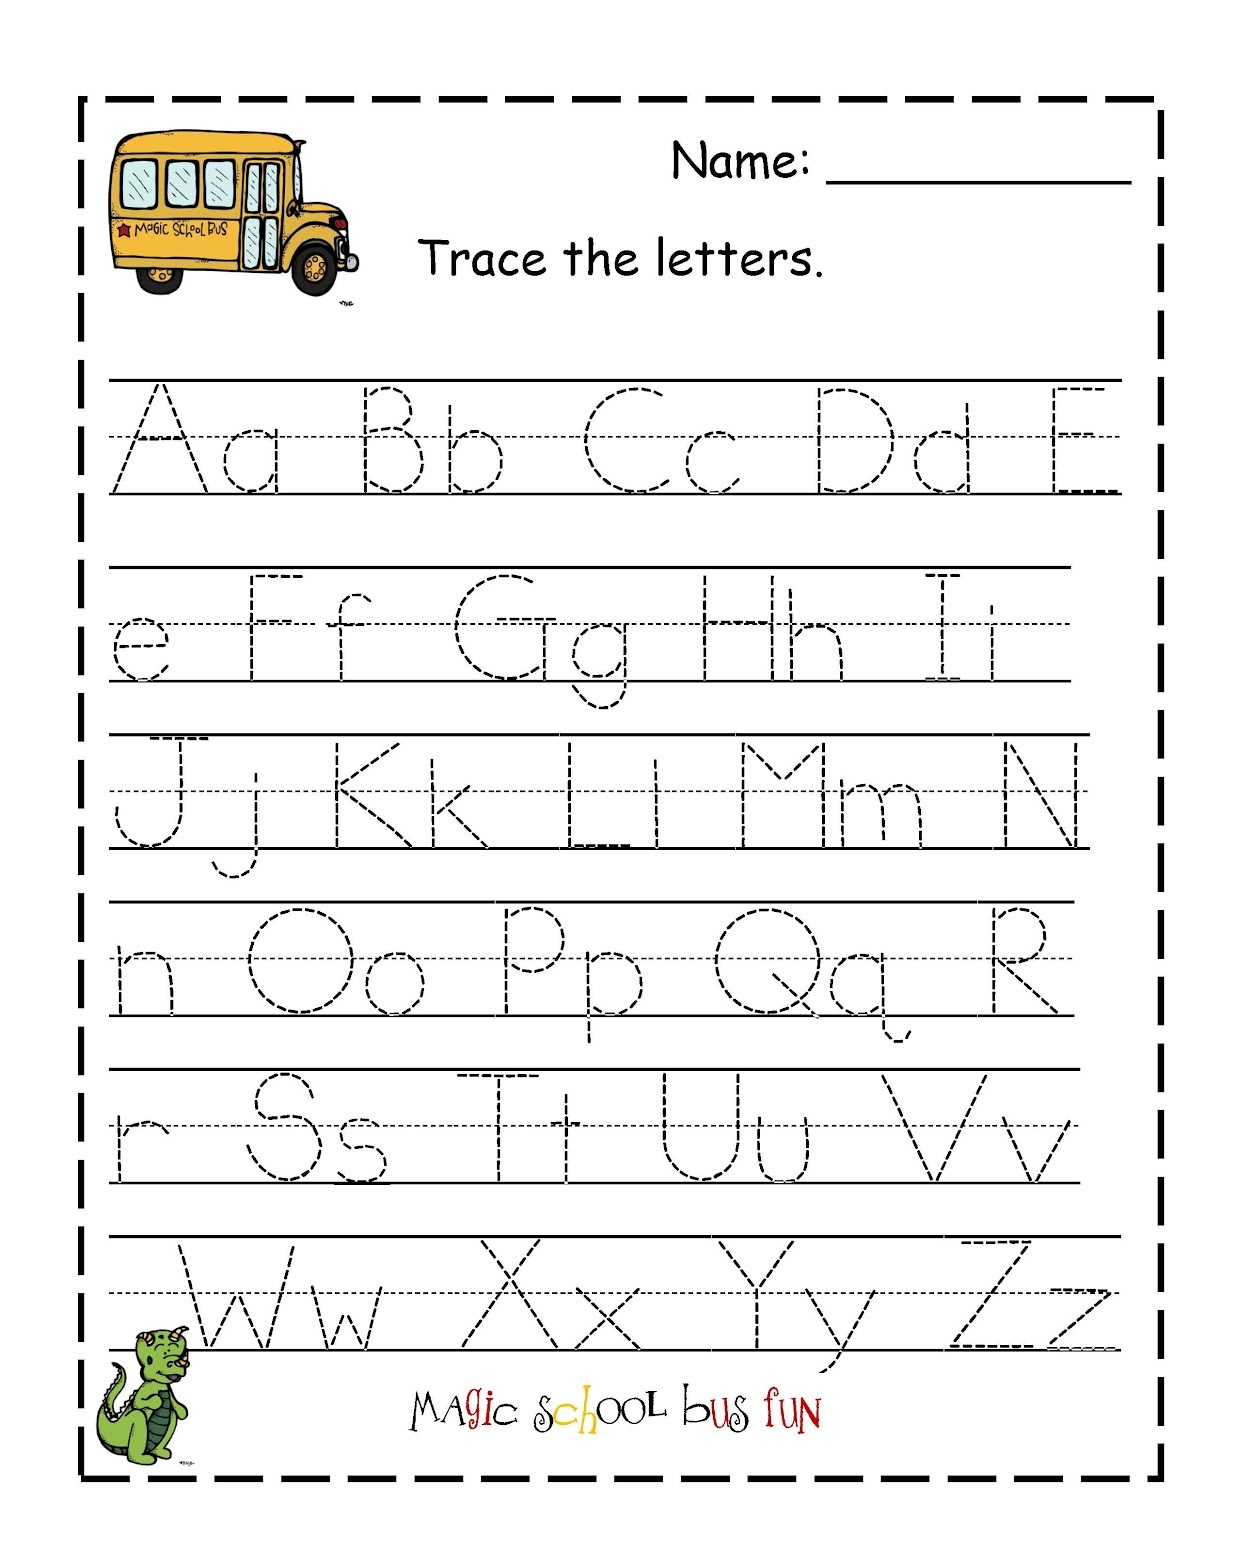 Worksheet Traceable Letters traceable letter worksheets to print activity shelter printable for kids